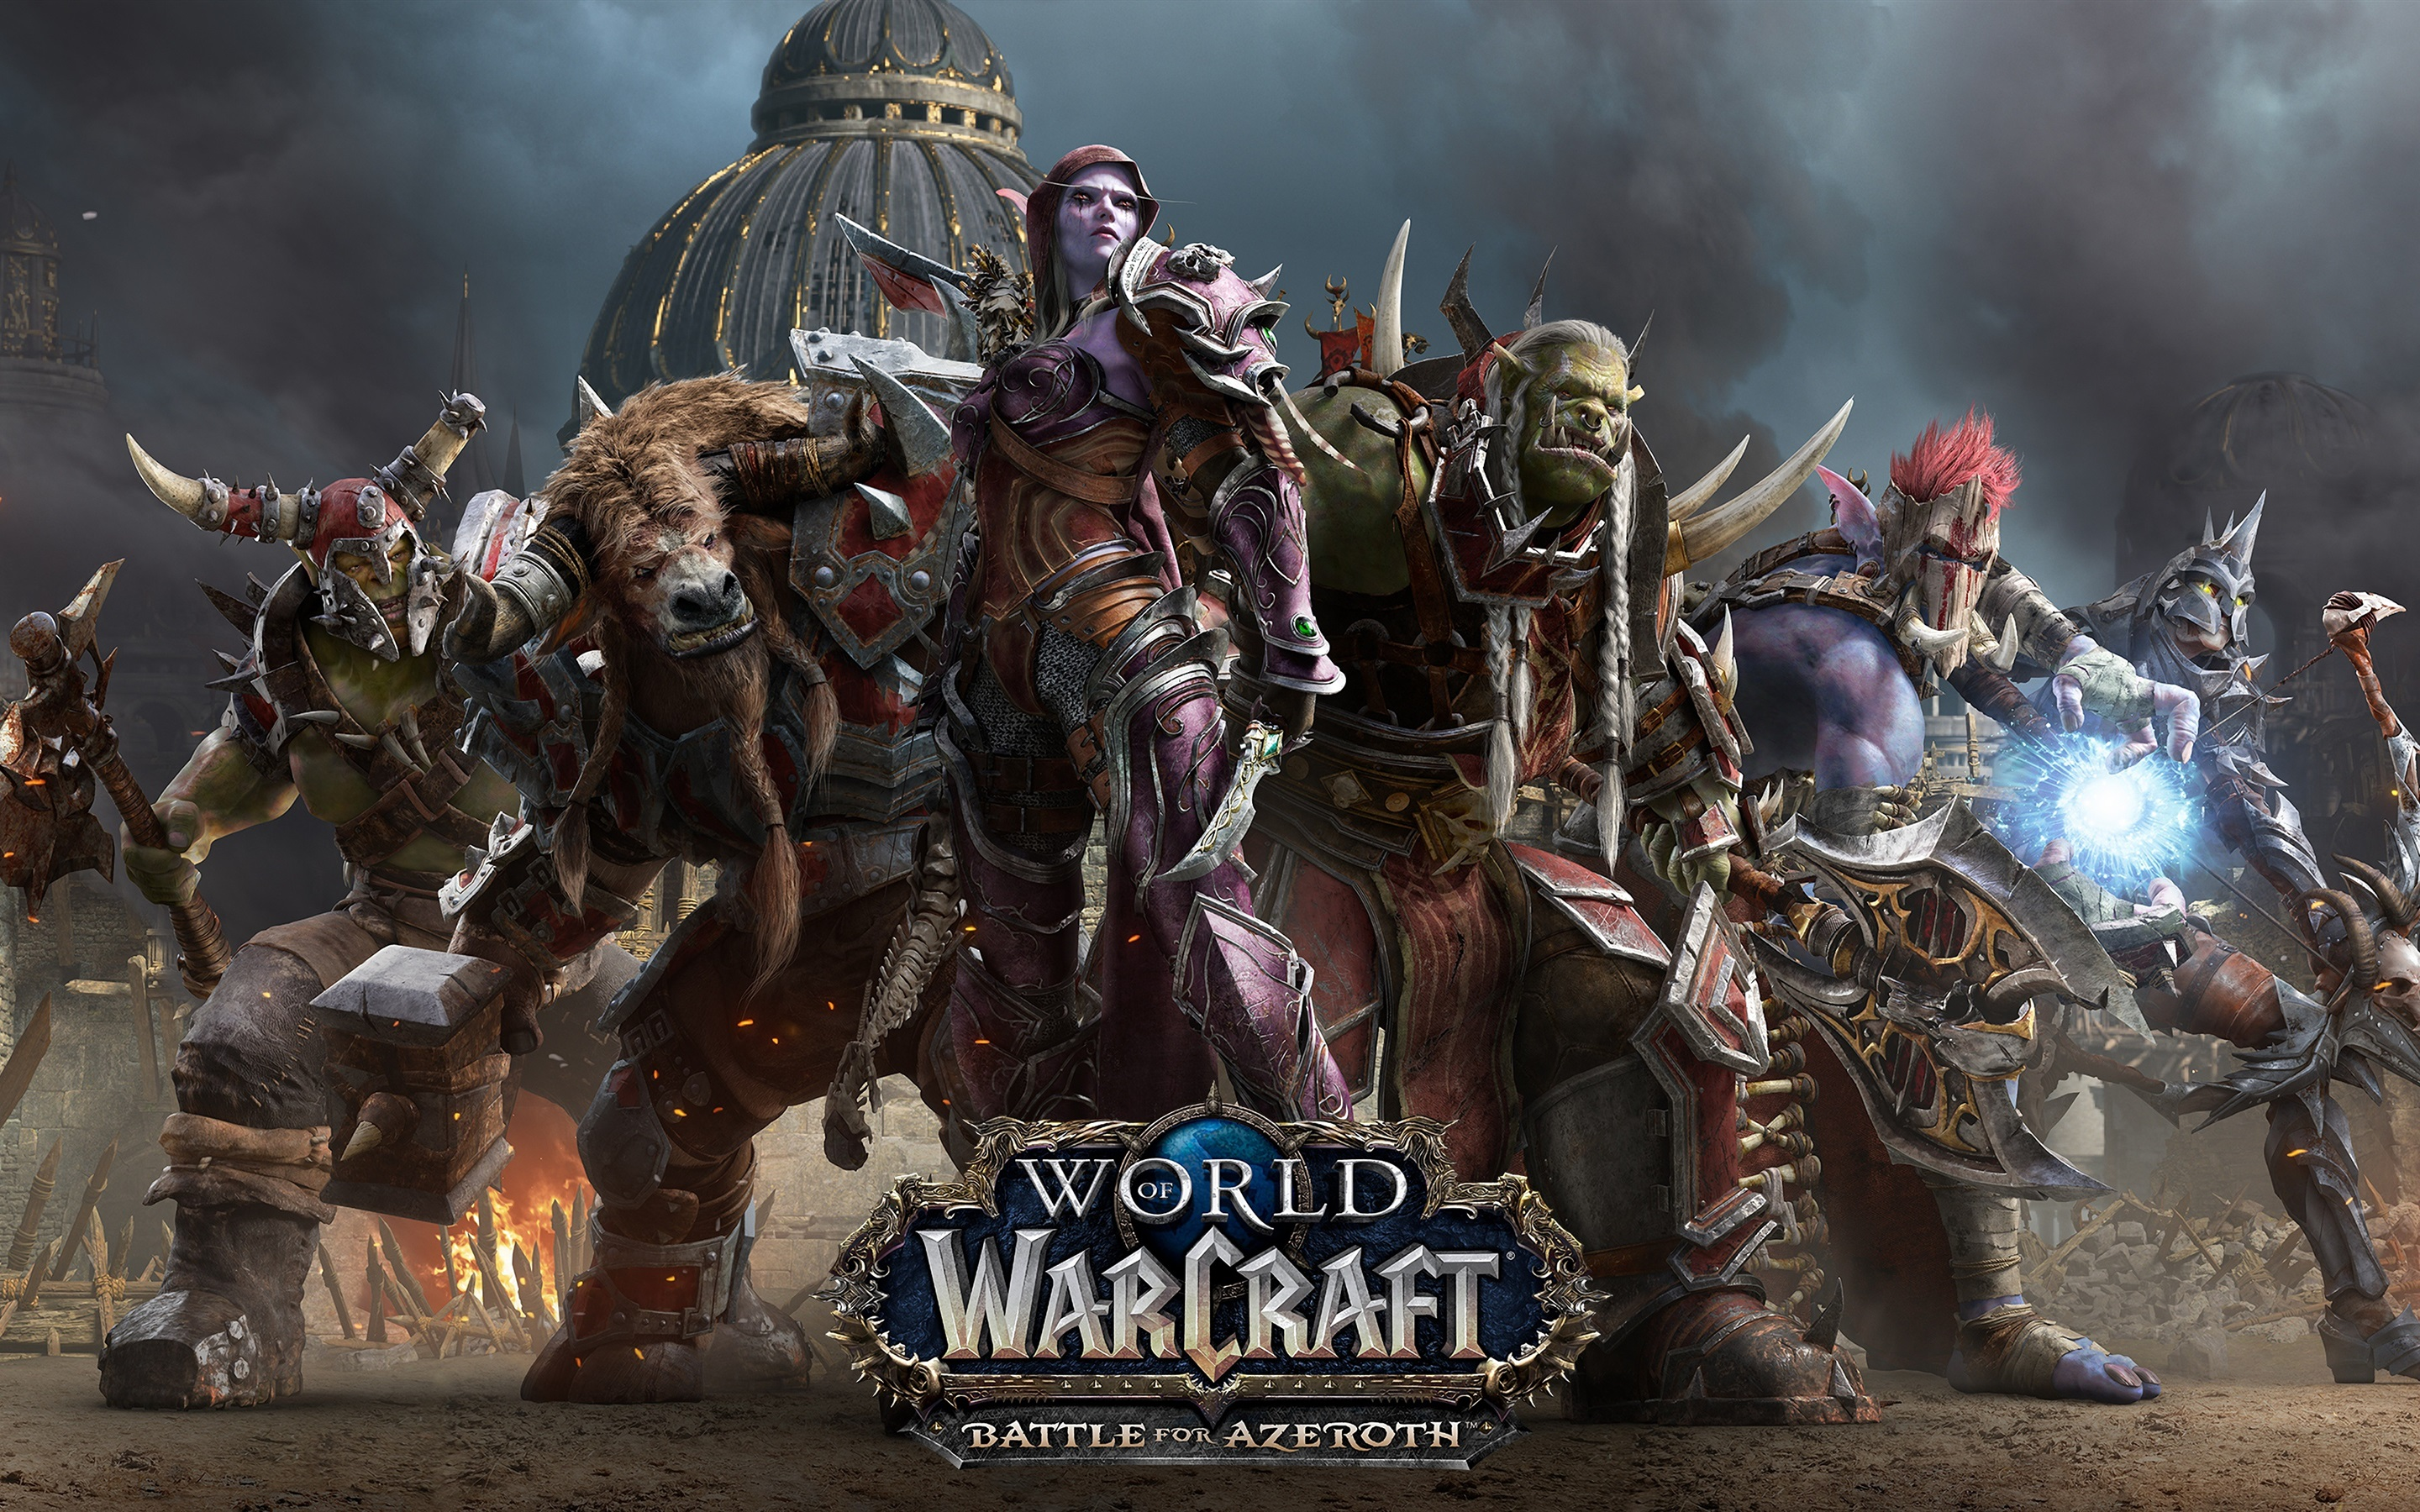 Wallpaper World of Warcraft: Battle for Azeroth, hot game ...